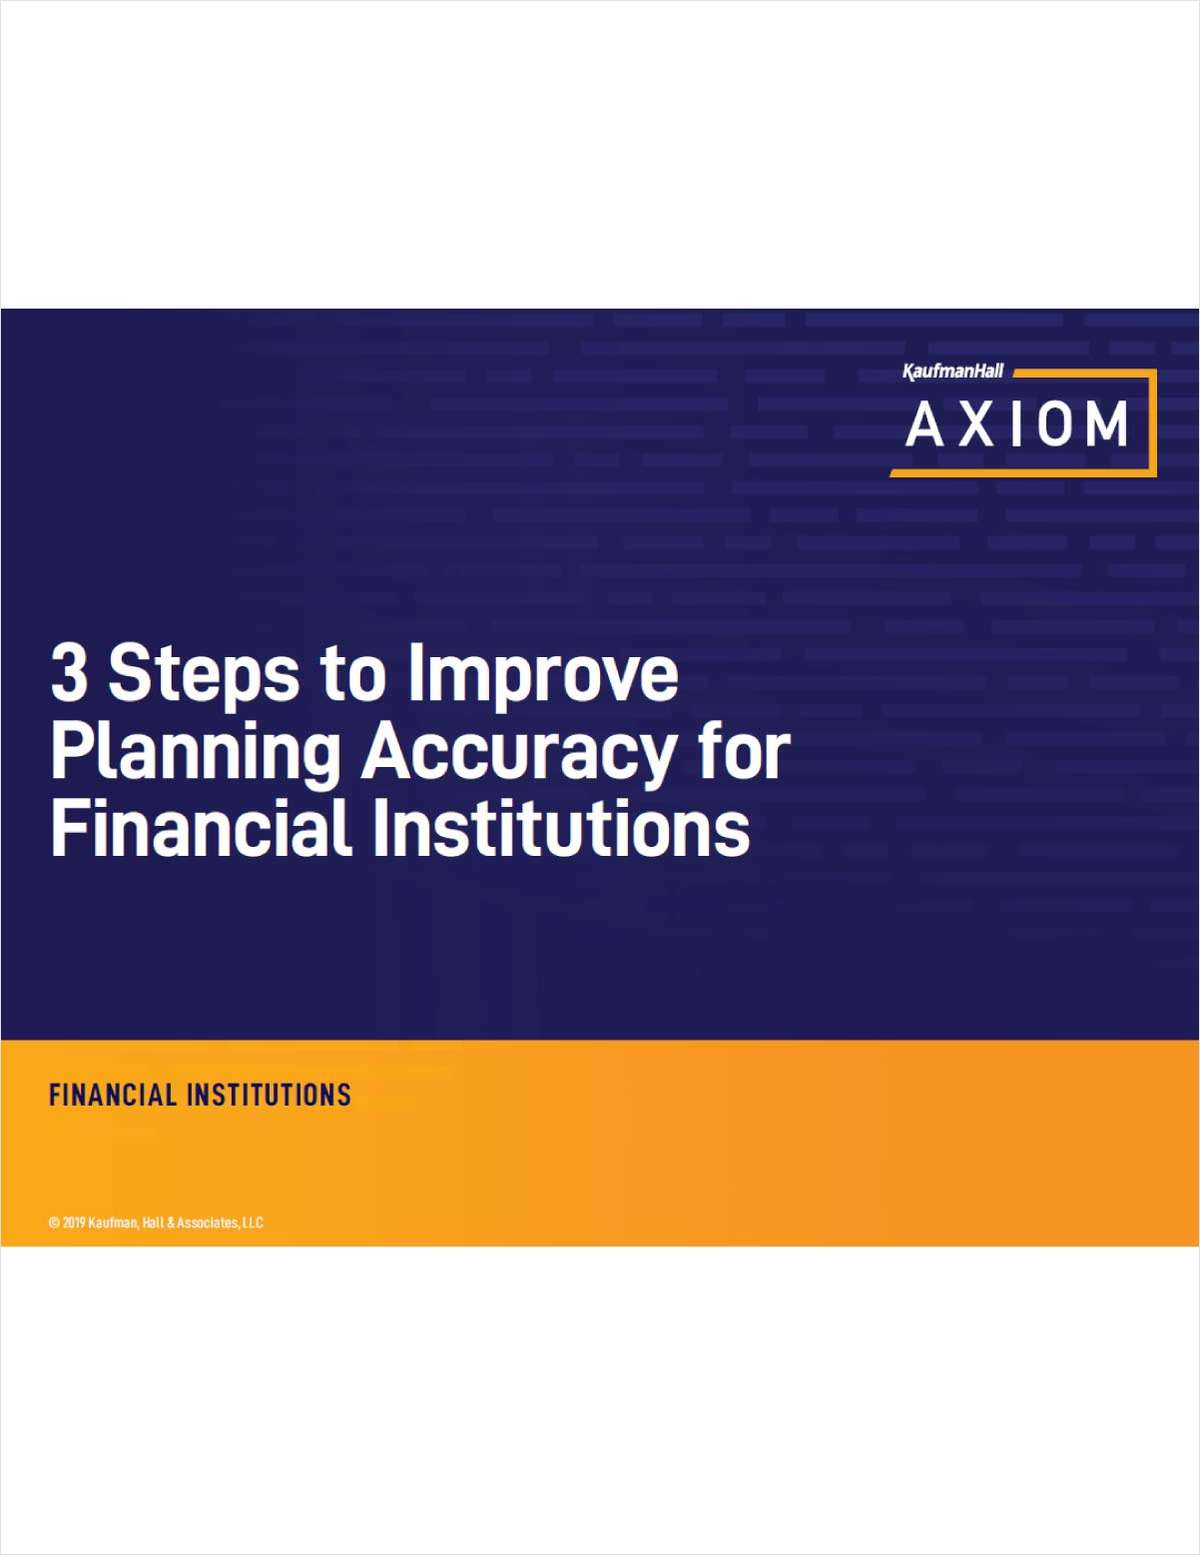 3 Steps to Improve Planning Accuracy for Credit Unions